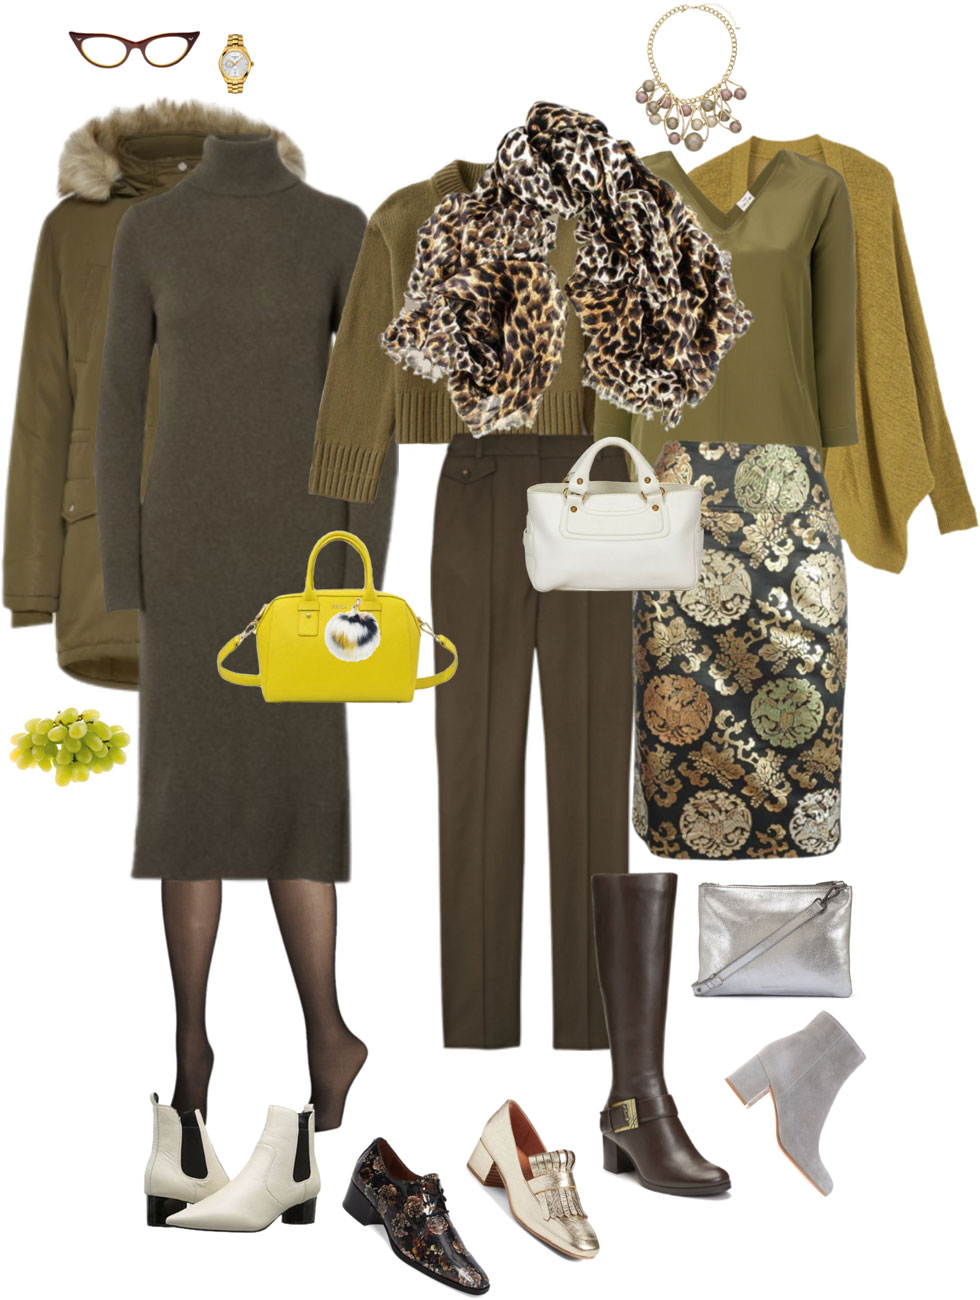 Ensemble Style Advice - Olive All Over